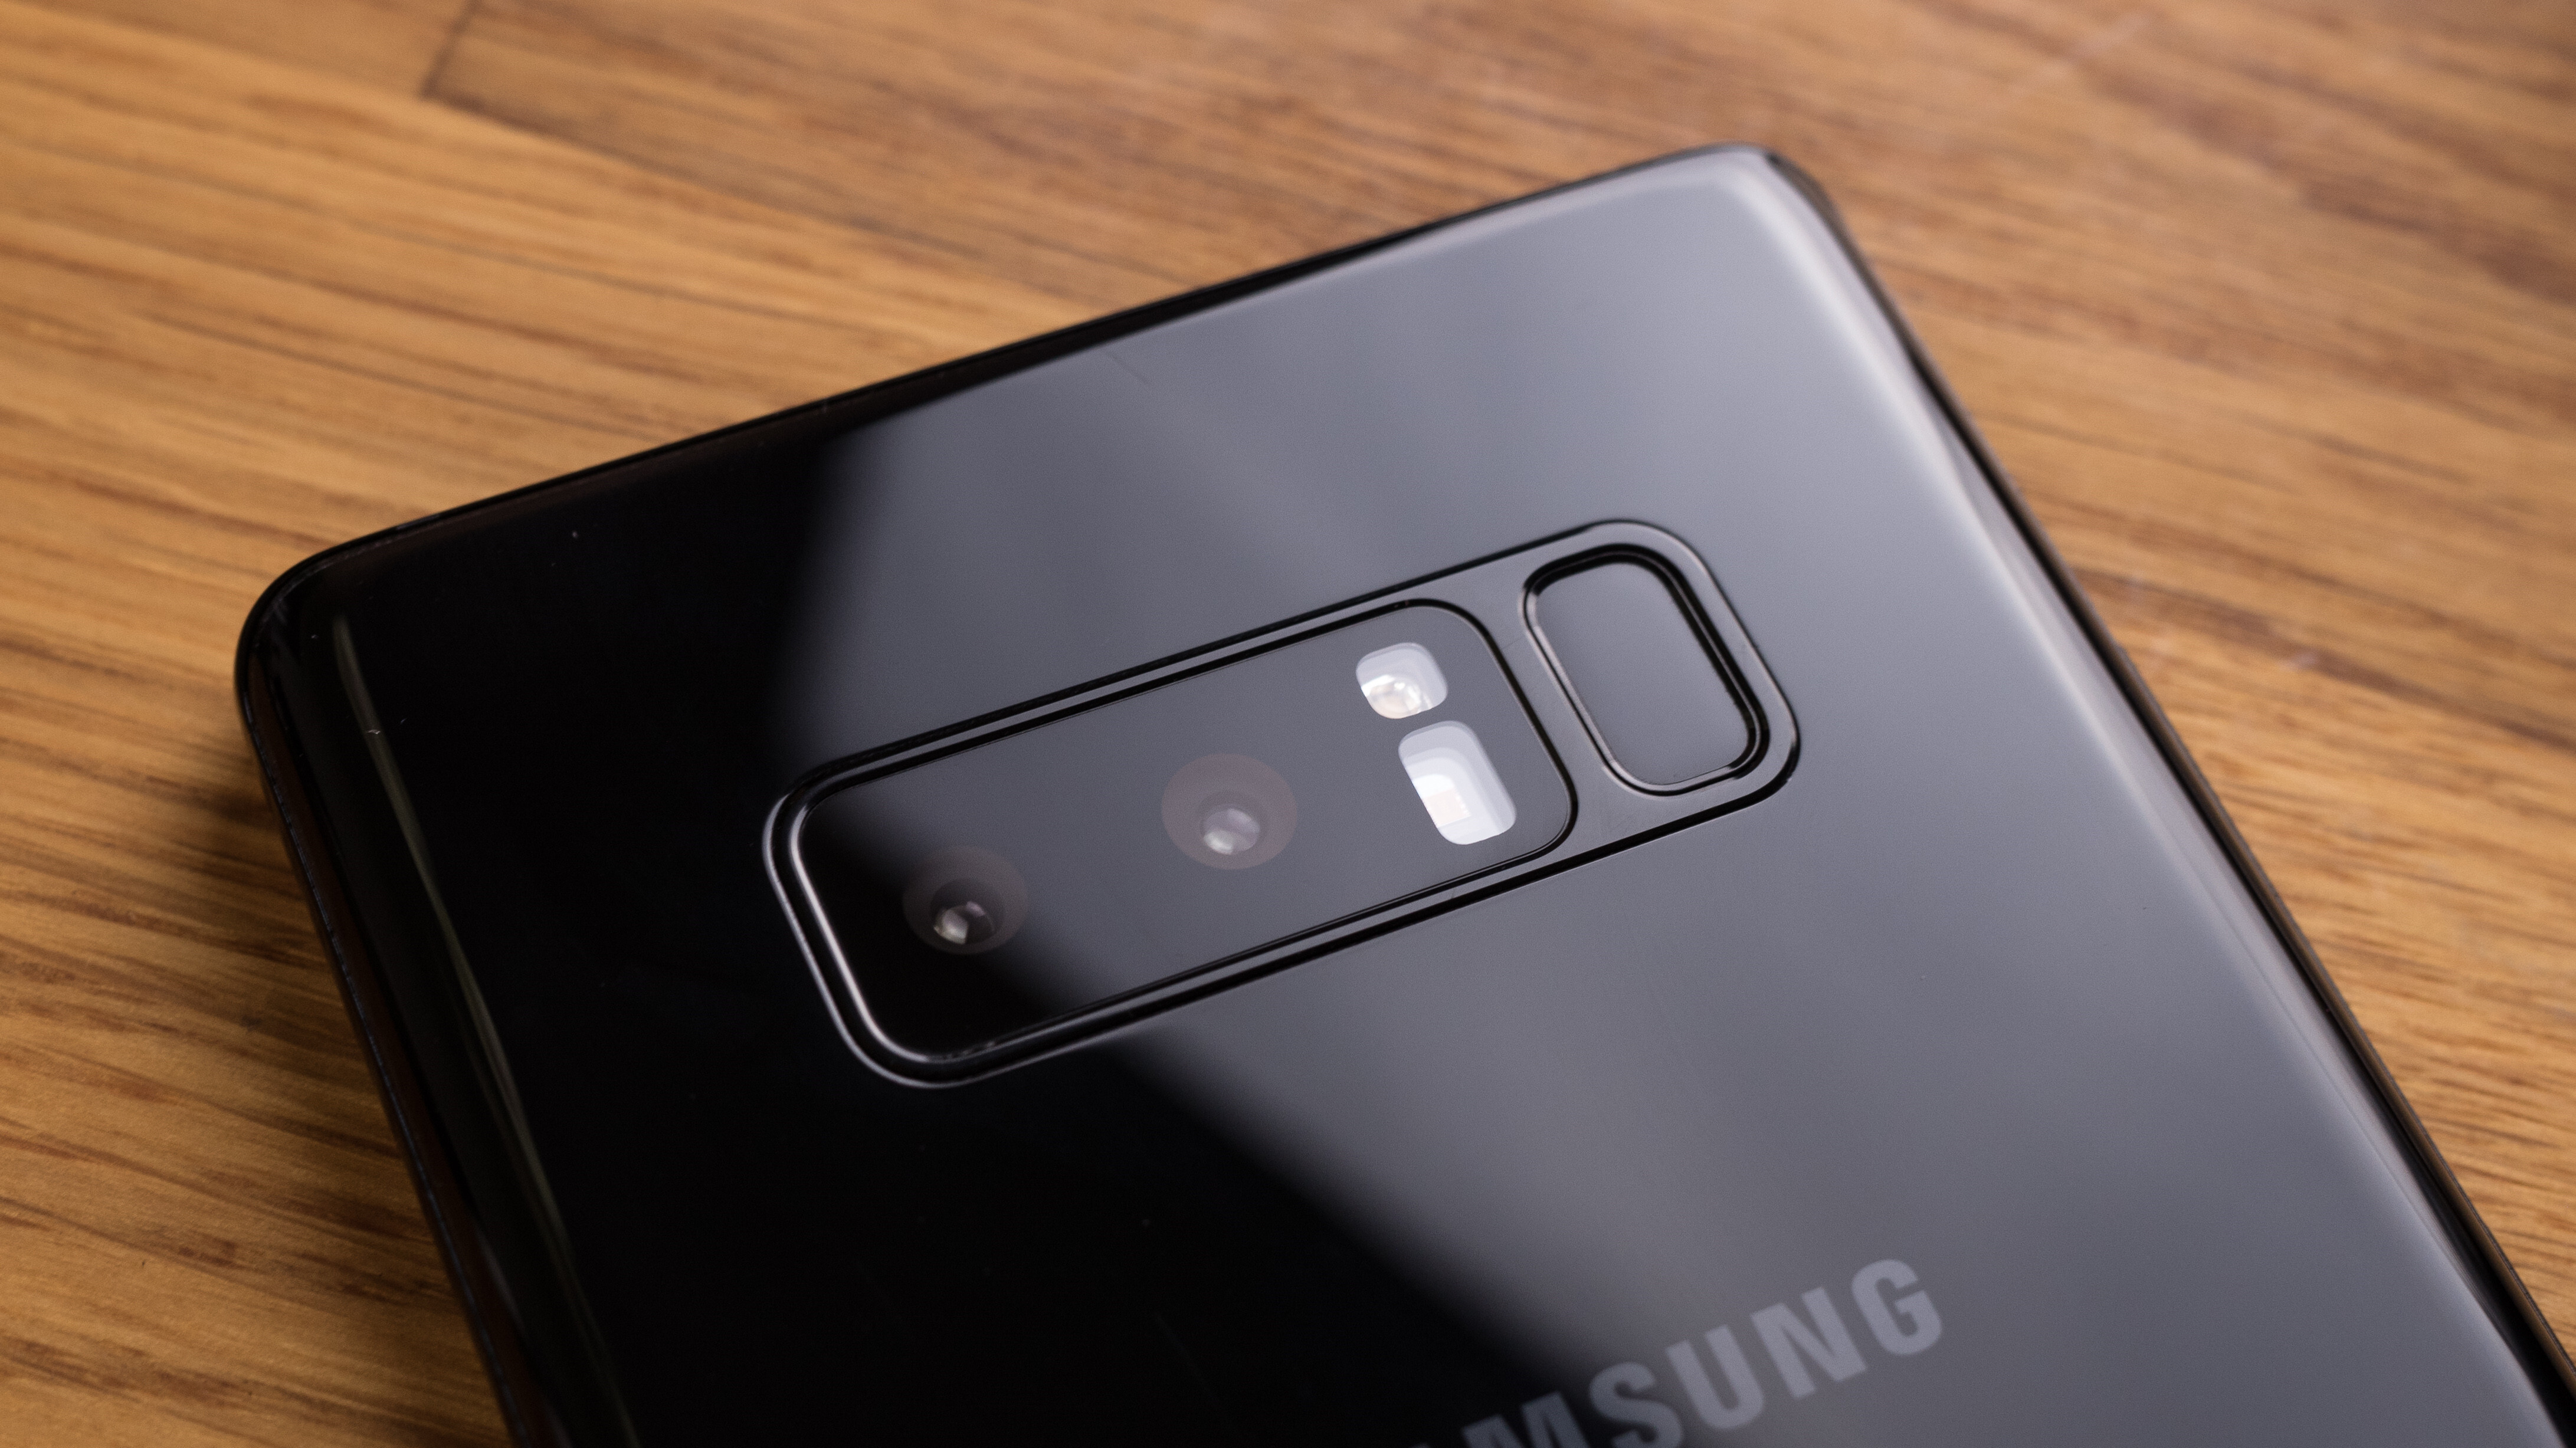 Samsung Galaxy Note 8 update to Android 8.0 date revealed?